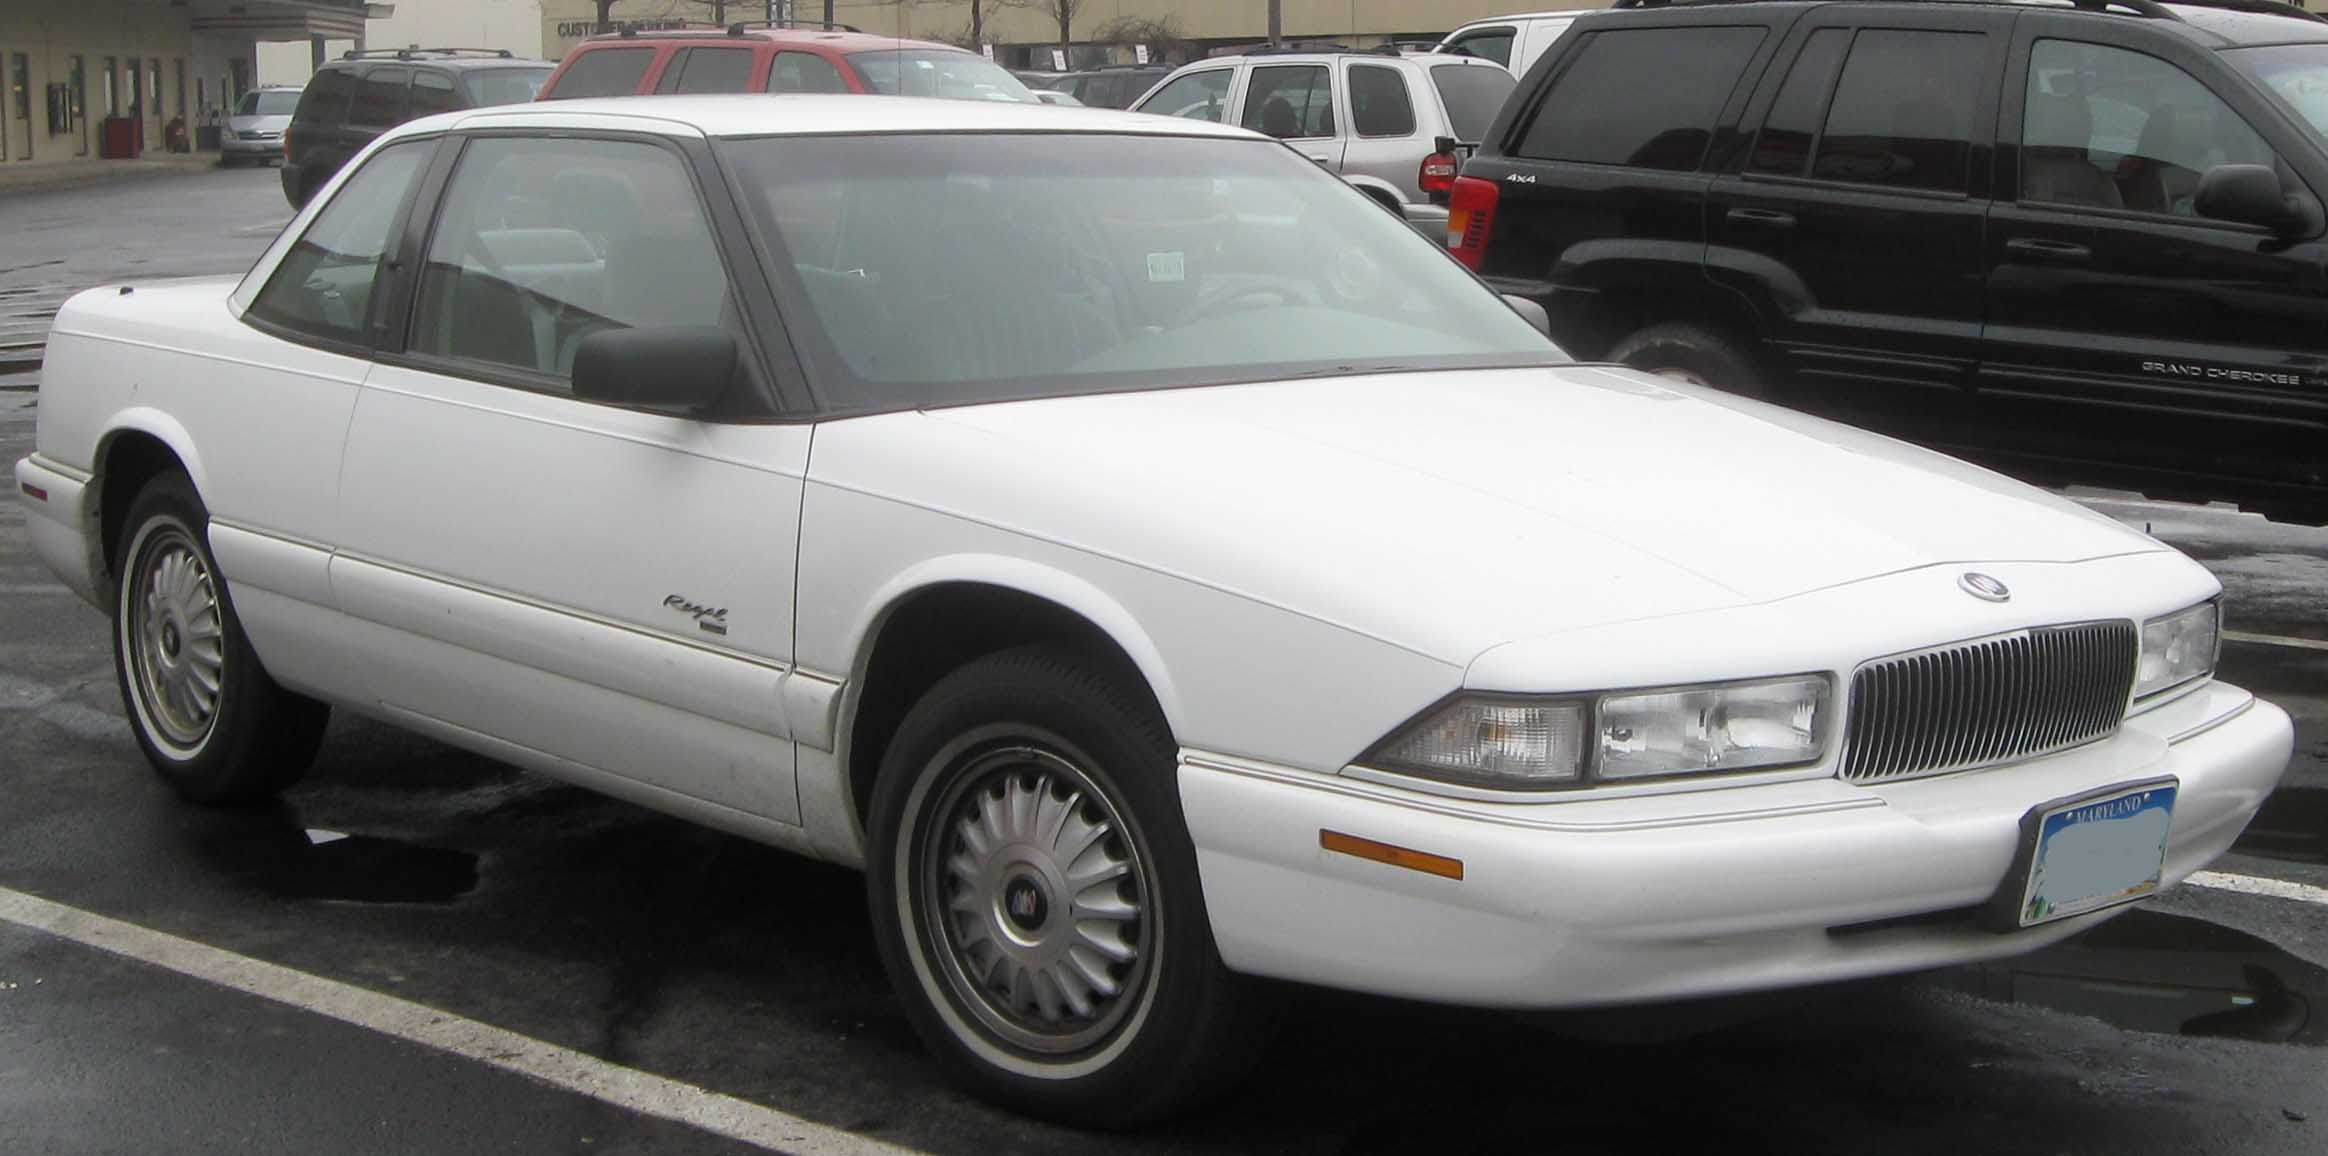 1994 buick regal coupe \u2013 pictures, information and specs auto American Sports Cars 1994